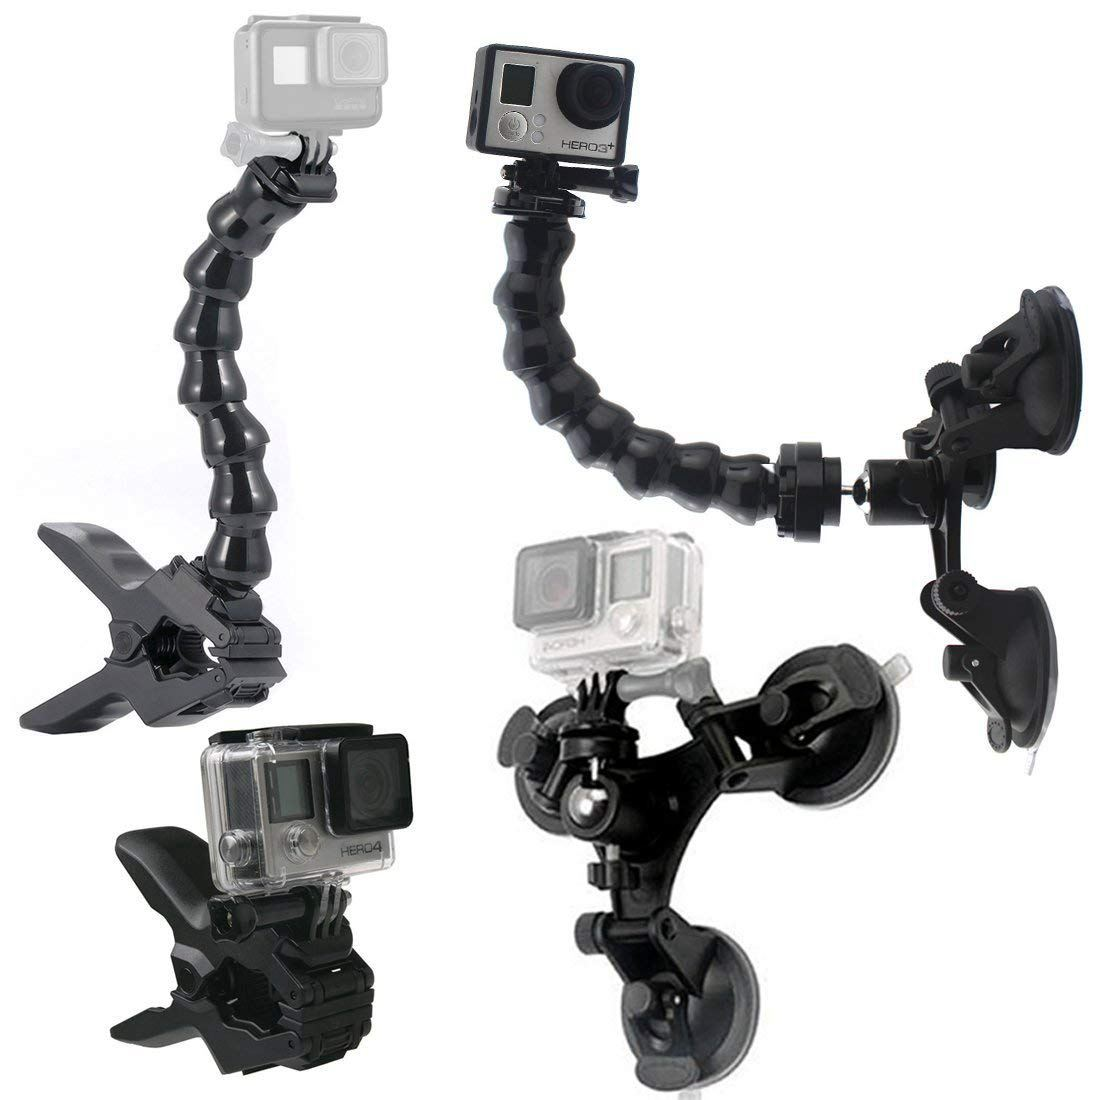 Suction Cup Car Mount Holder with 360 Degree Mount+Jaws Flex Clamp Mount with Adjustable Gooseneck GoPro Accessories for GoPro